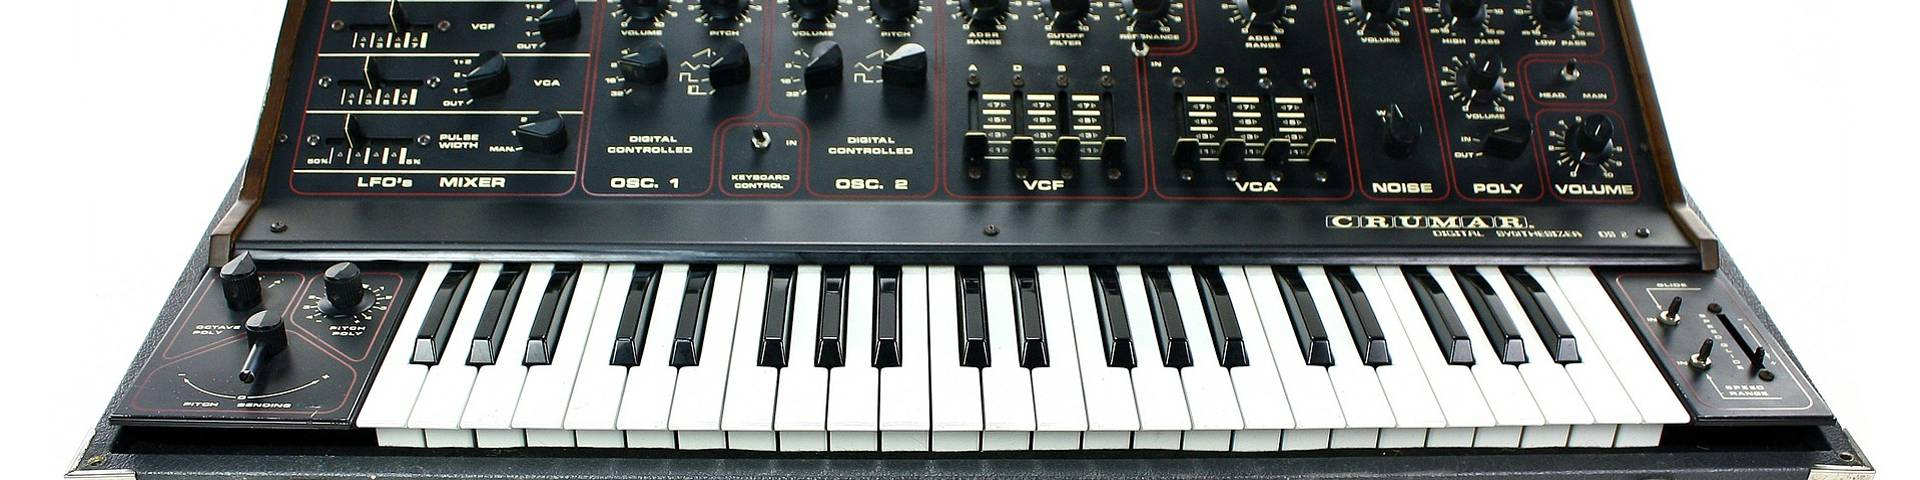 A retro digital synthesiser